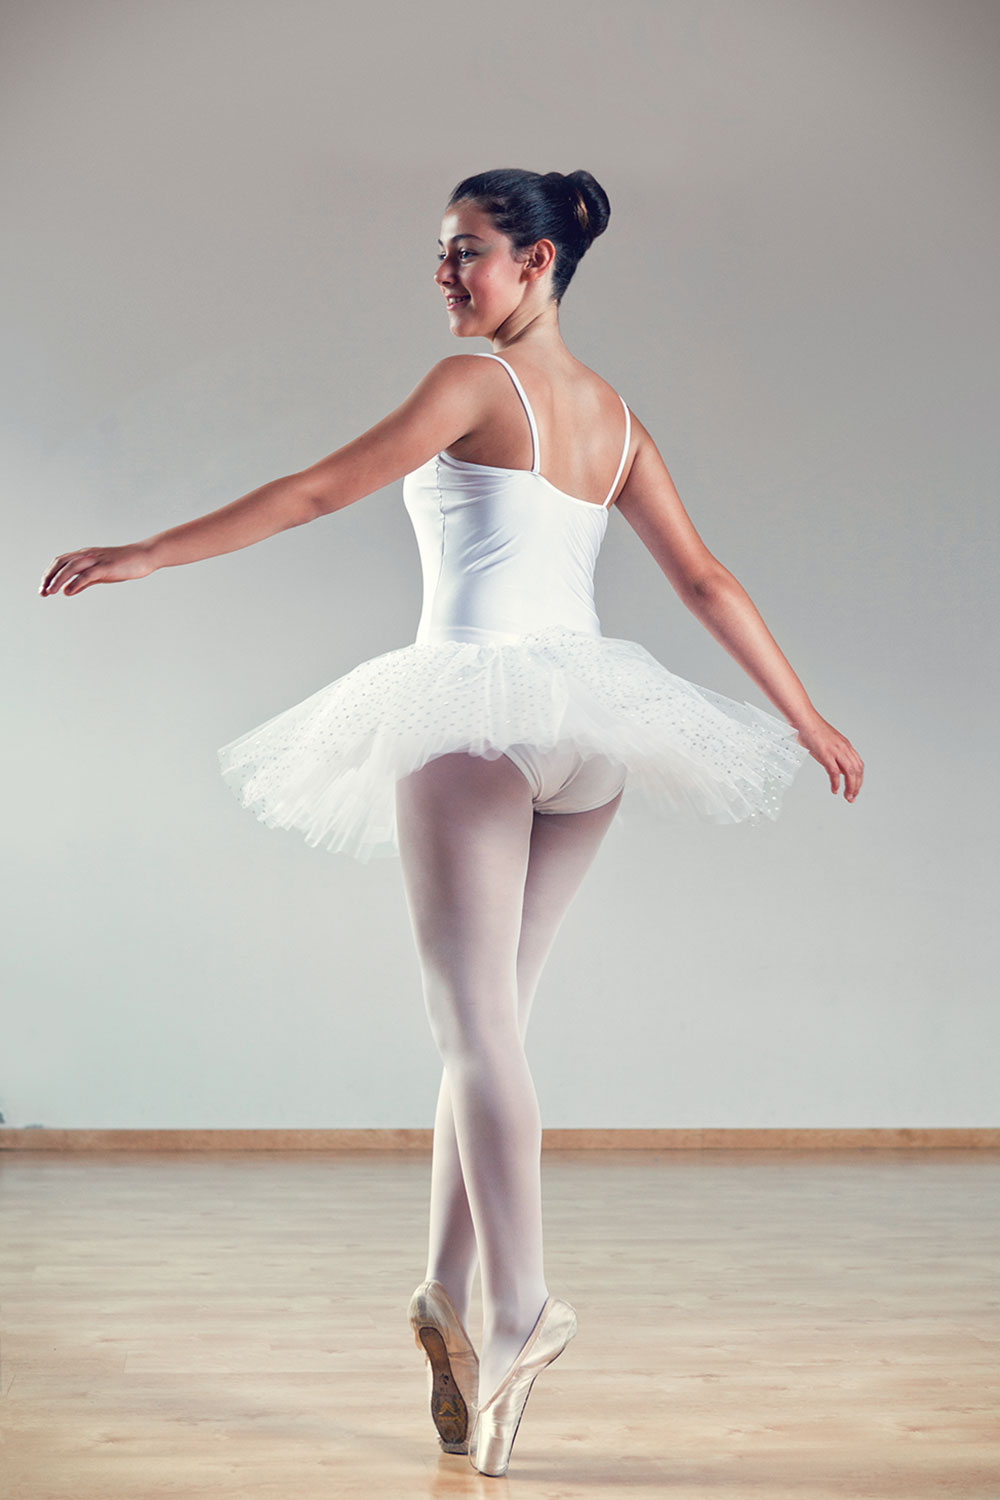 Portrait of young dancer